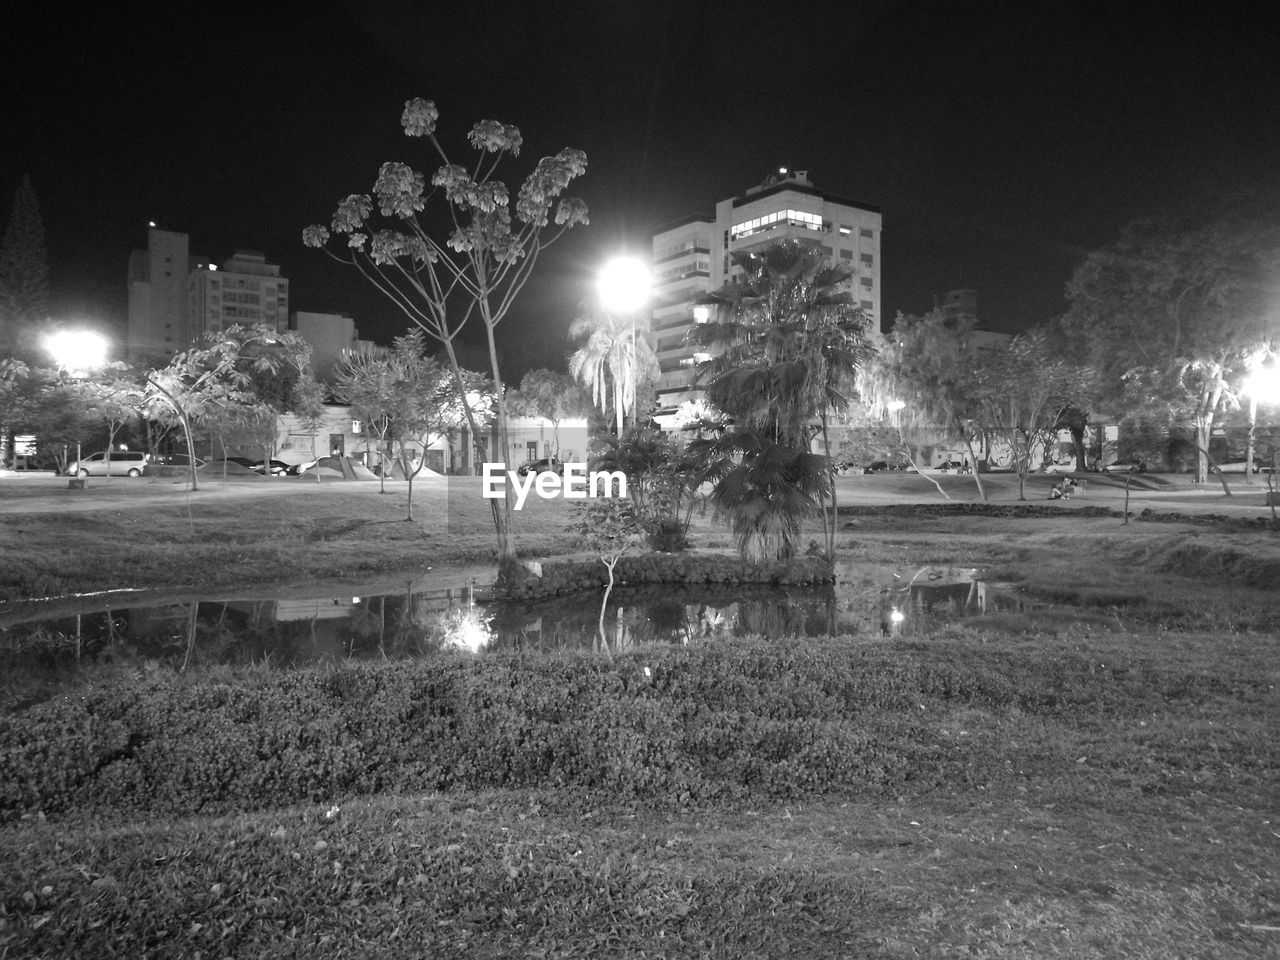 night, illuminated, architecture, built structure, plant, building exterior, nature, street light, city, grass, lighting equipment, no people, tree, street, sky, park - man made space, park, motion, outdoors, building, spraying